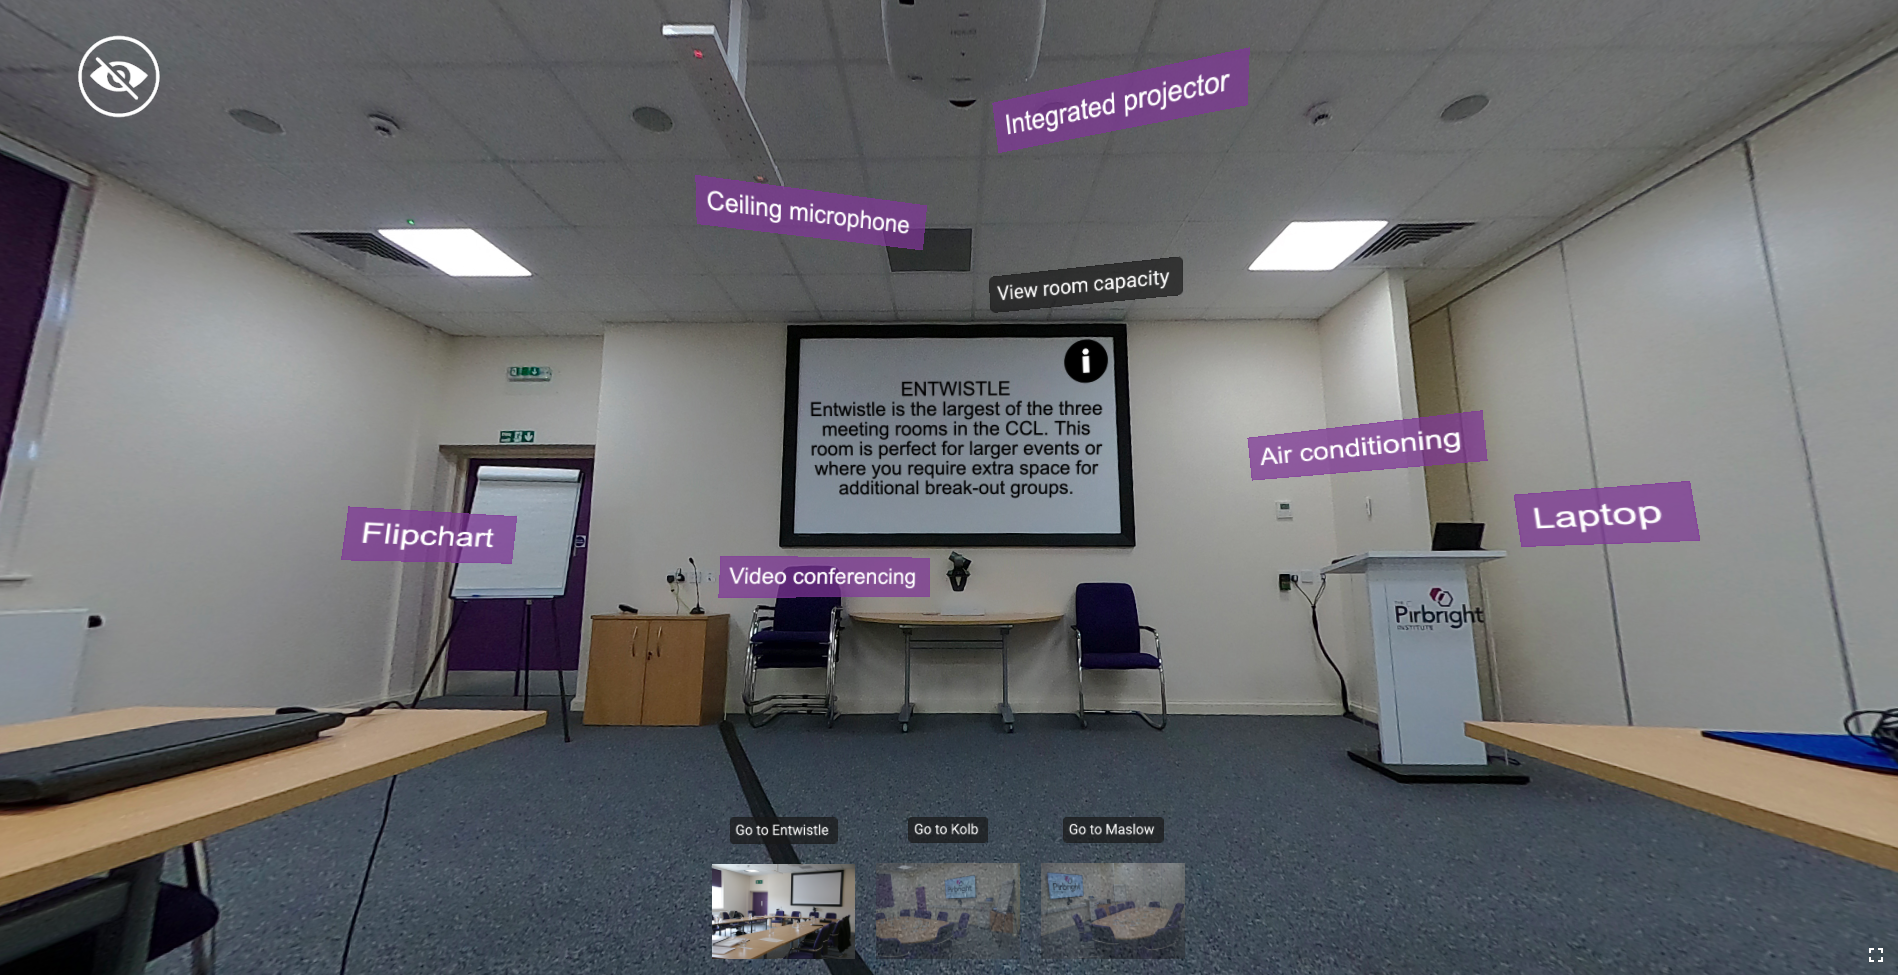 Image of a conference room with text boxes calling out different features